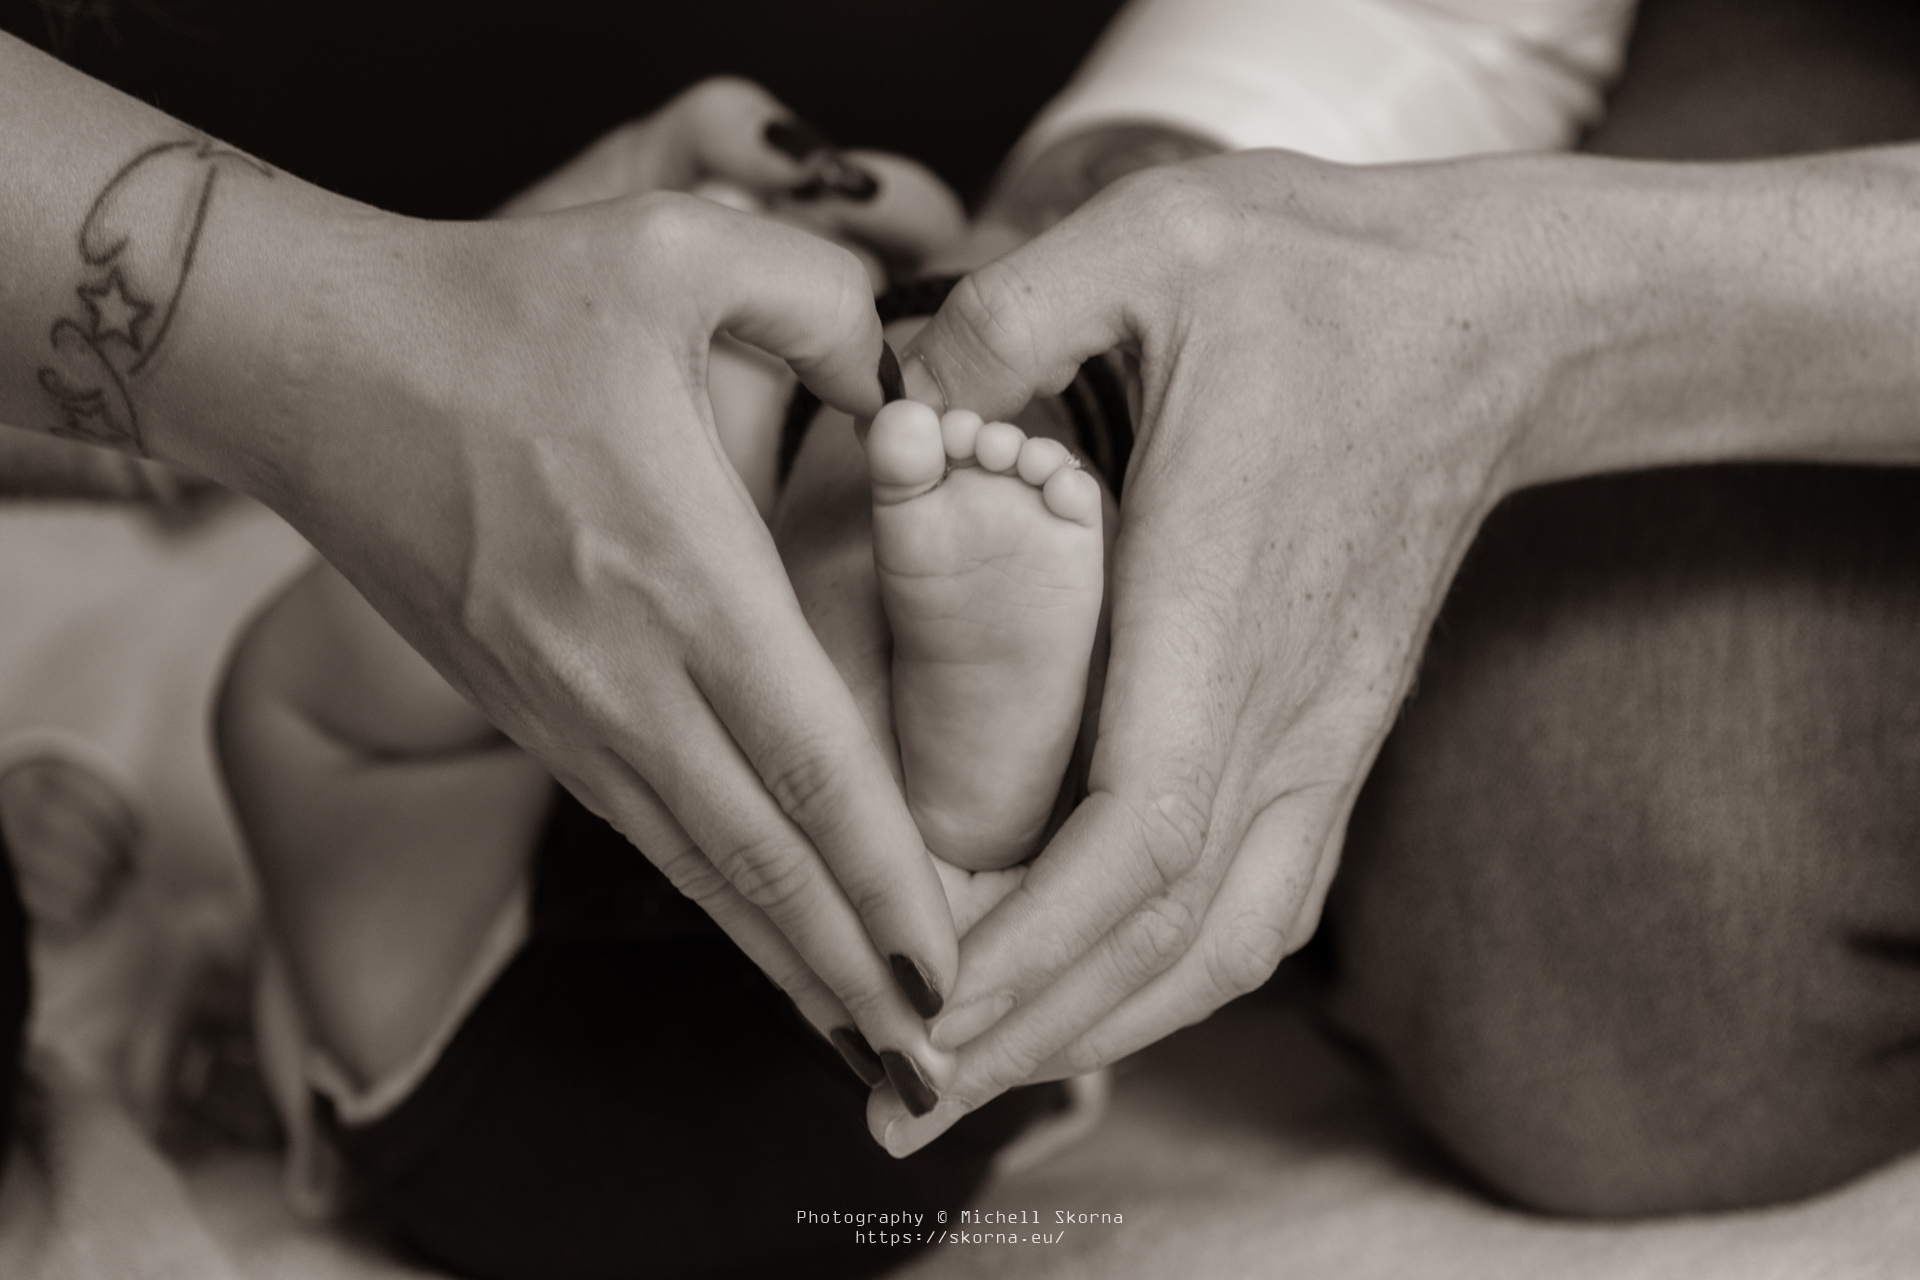 Couple holding the feet of their newborn baby in their hands. Their hands are forming a heart.